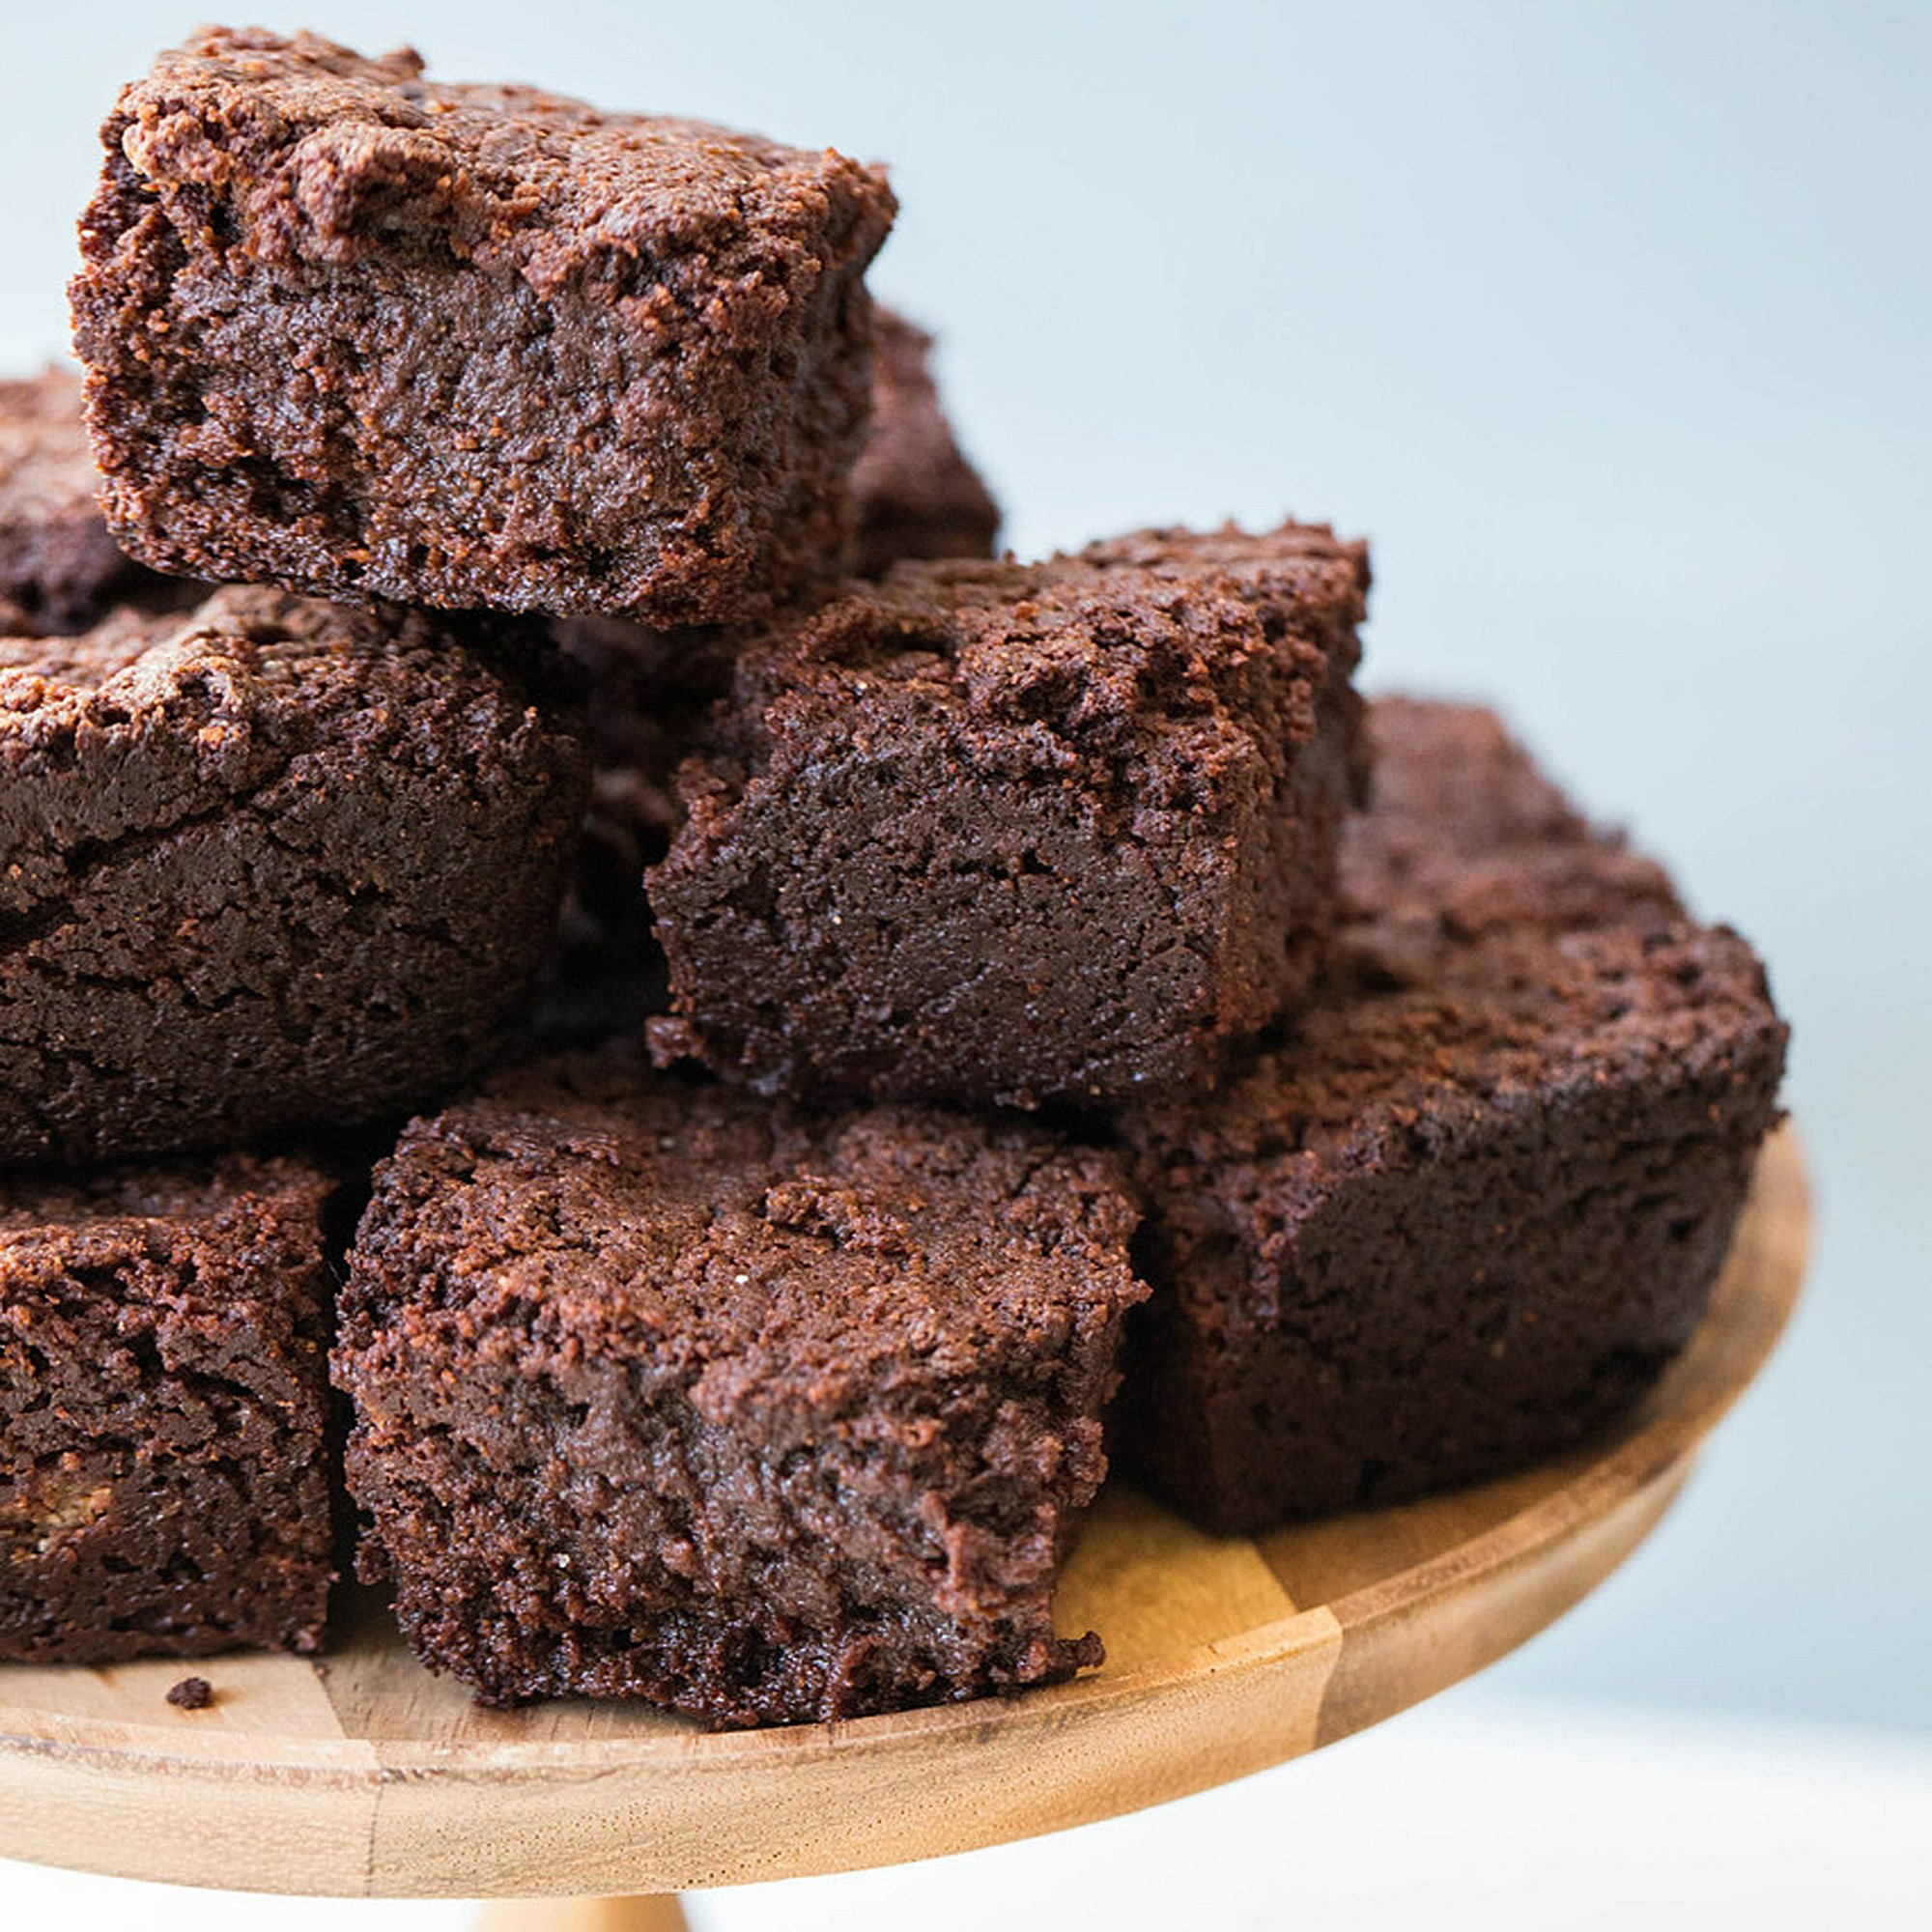 COOKING ON DEADLINE: One-Pot Mexican Hot Chocolate Brownies